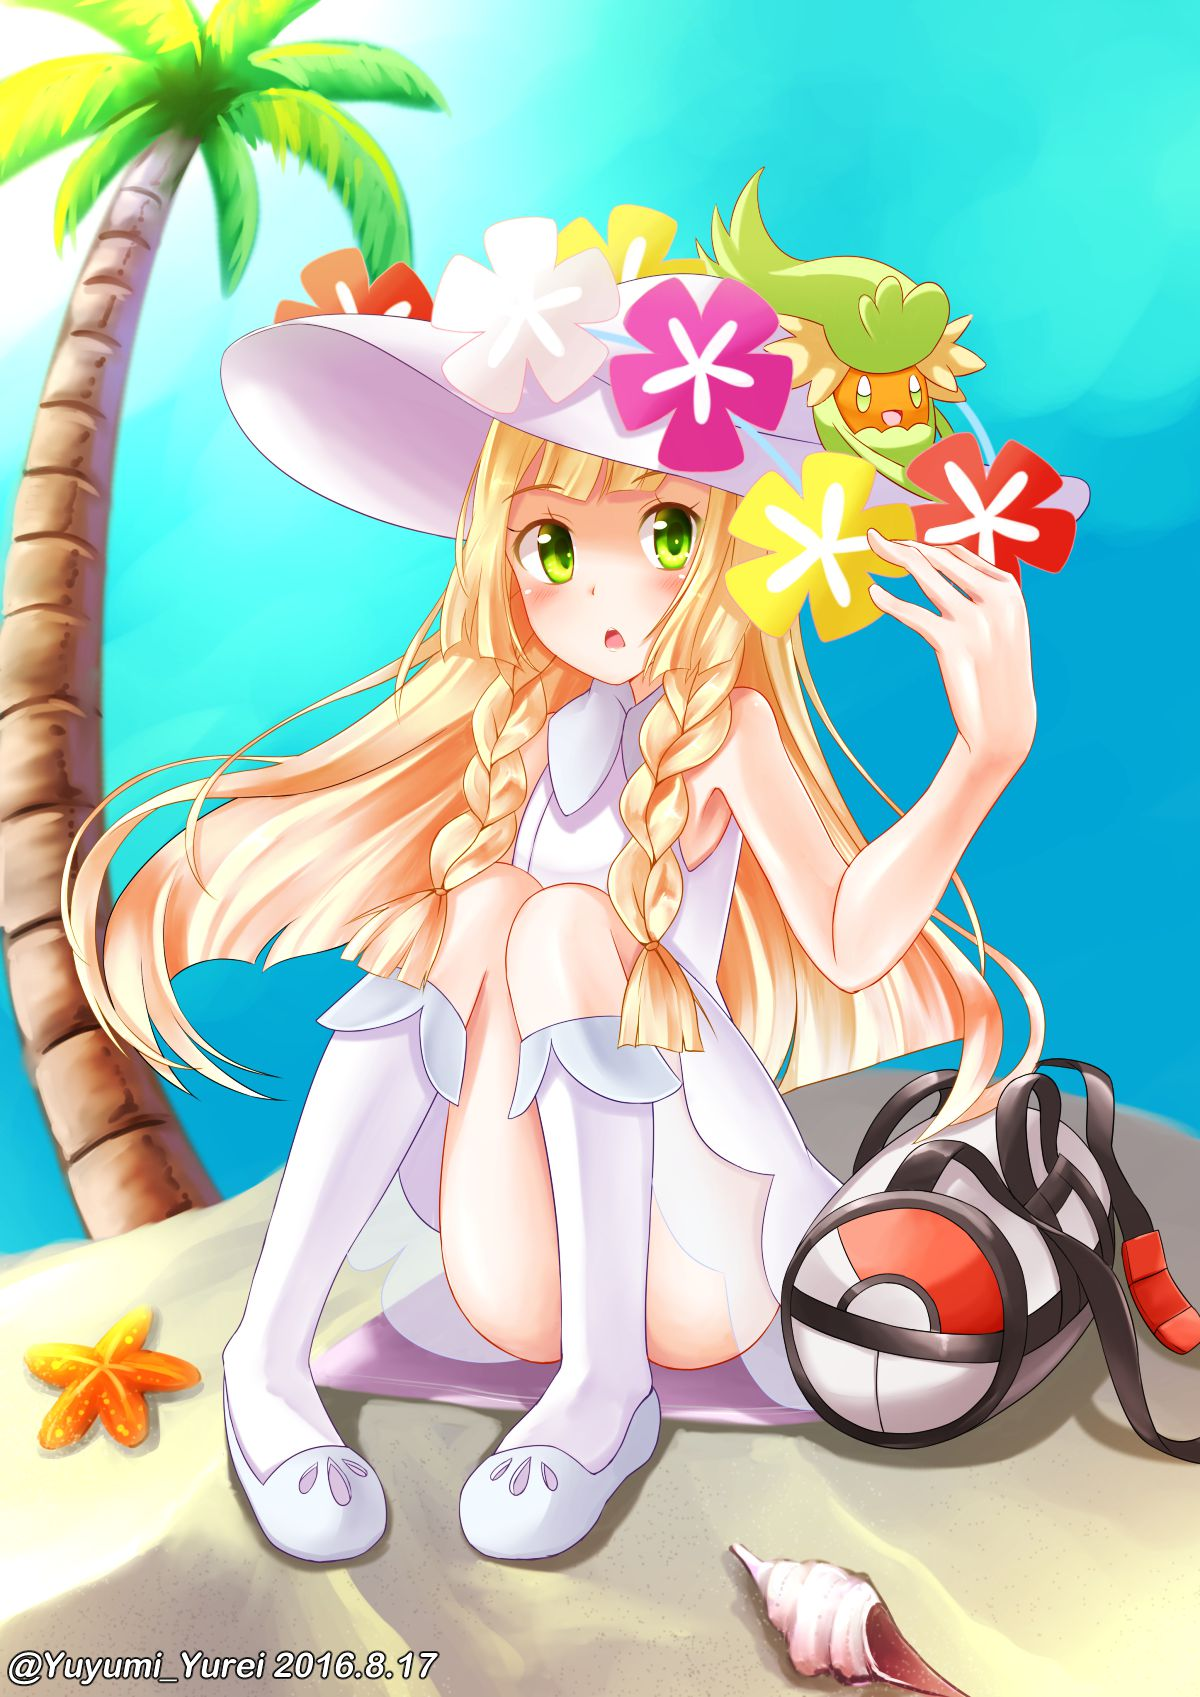 lillie_(pokemon)056